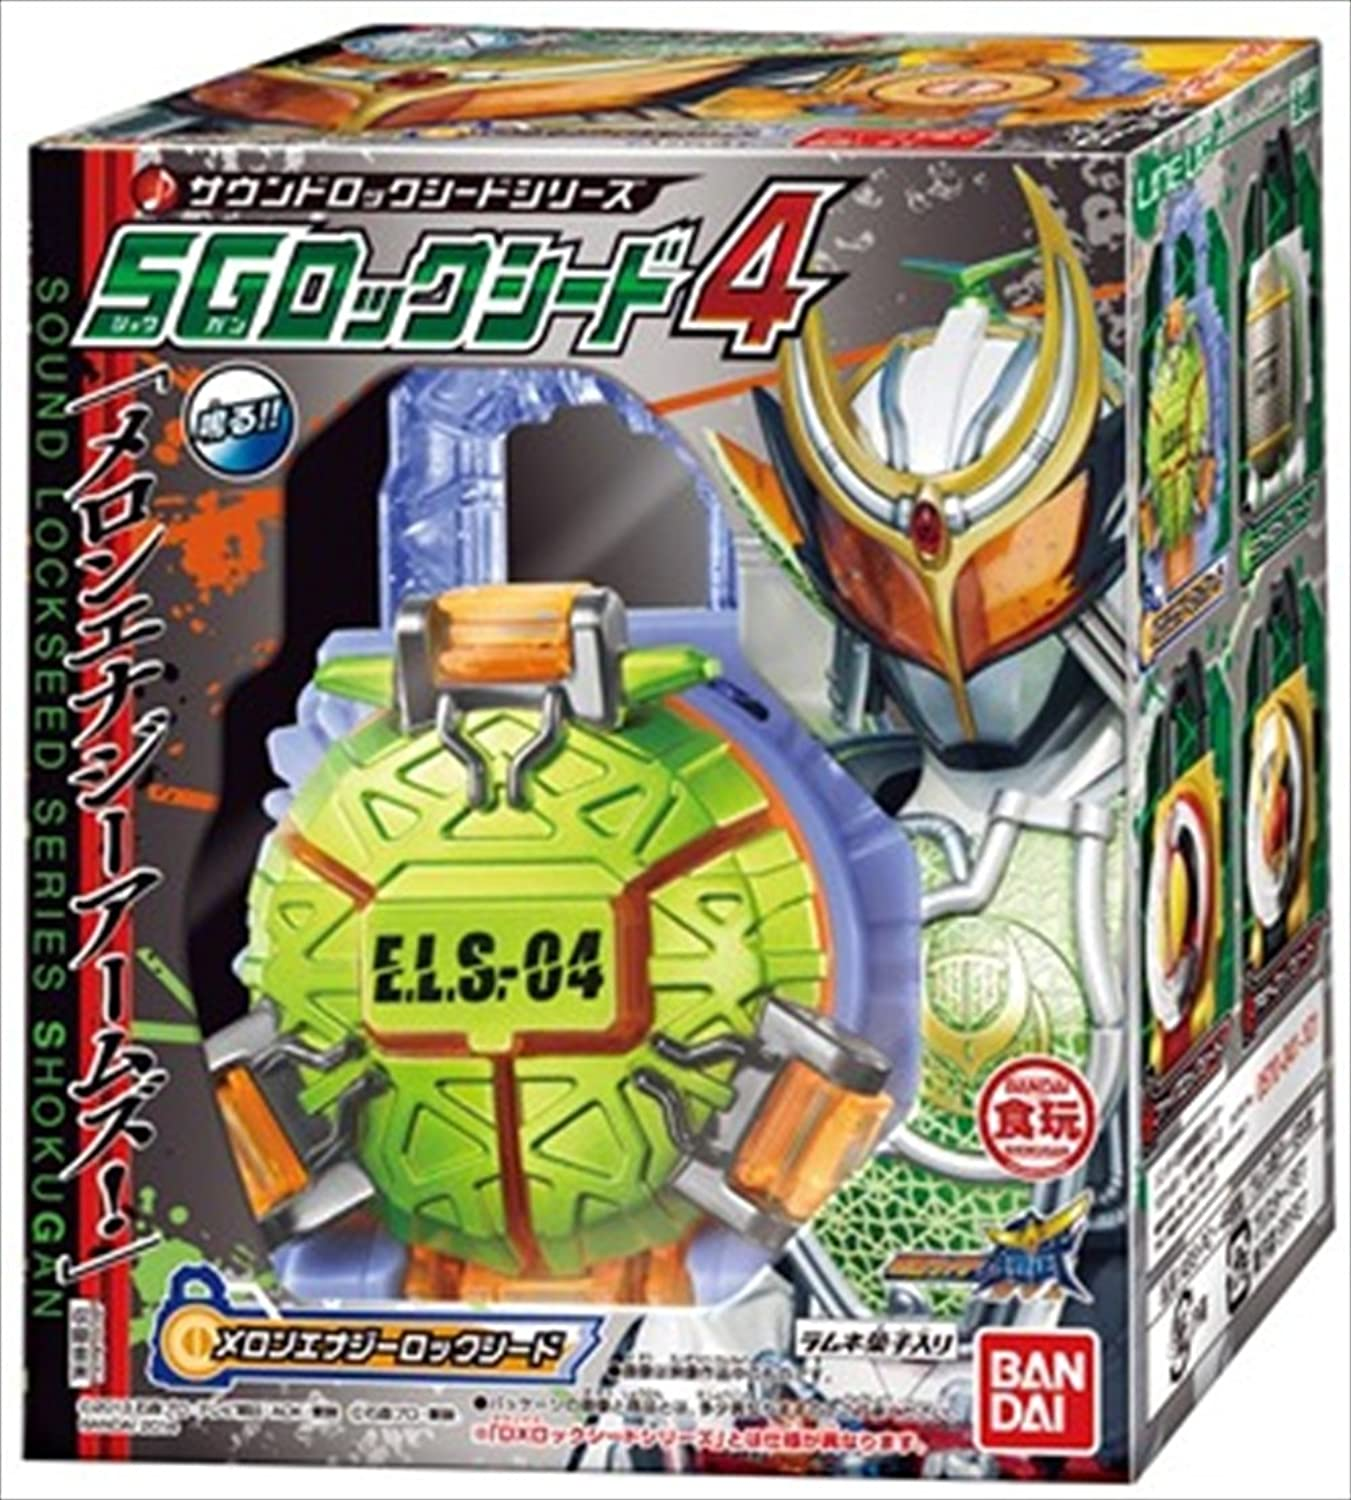 ON BOX 4 6 pieces lock sound seed series SG lock seed (Ramune Candy toy) (Japan import   The package and the manual are written in Japanese)